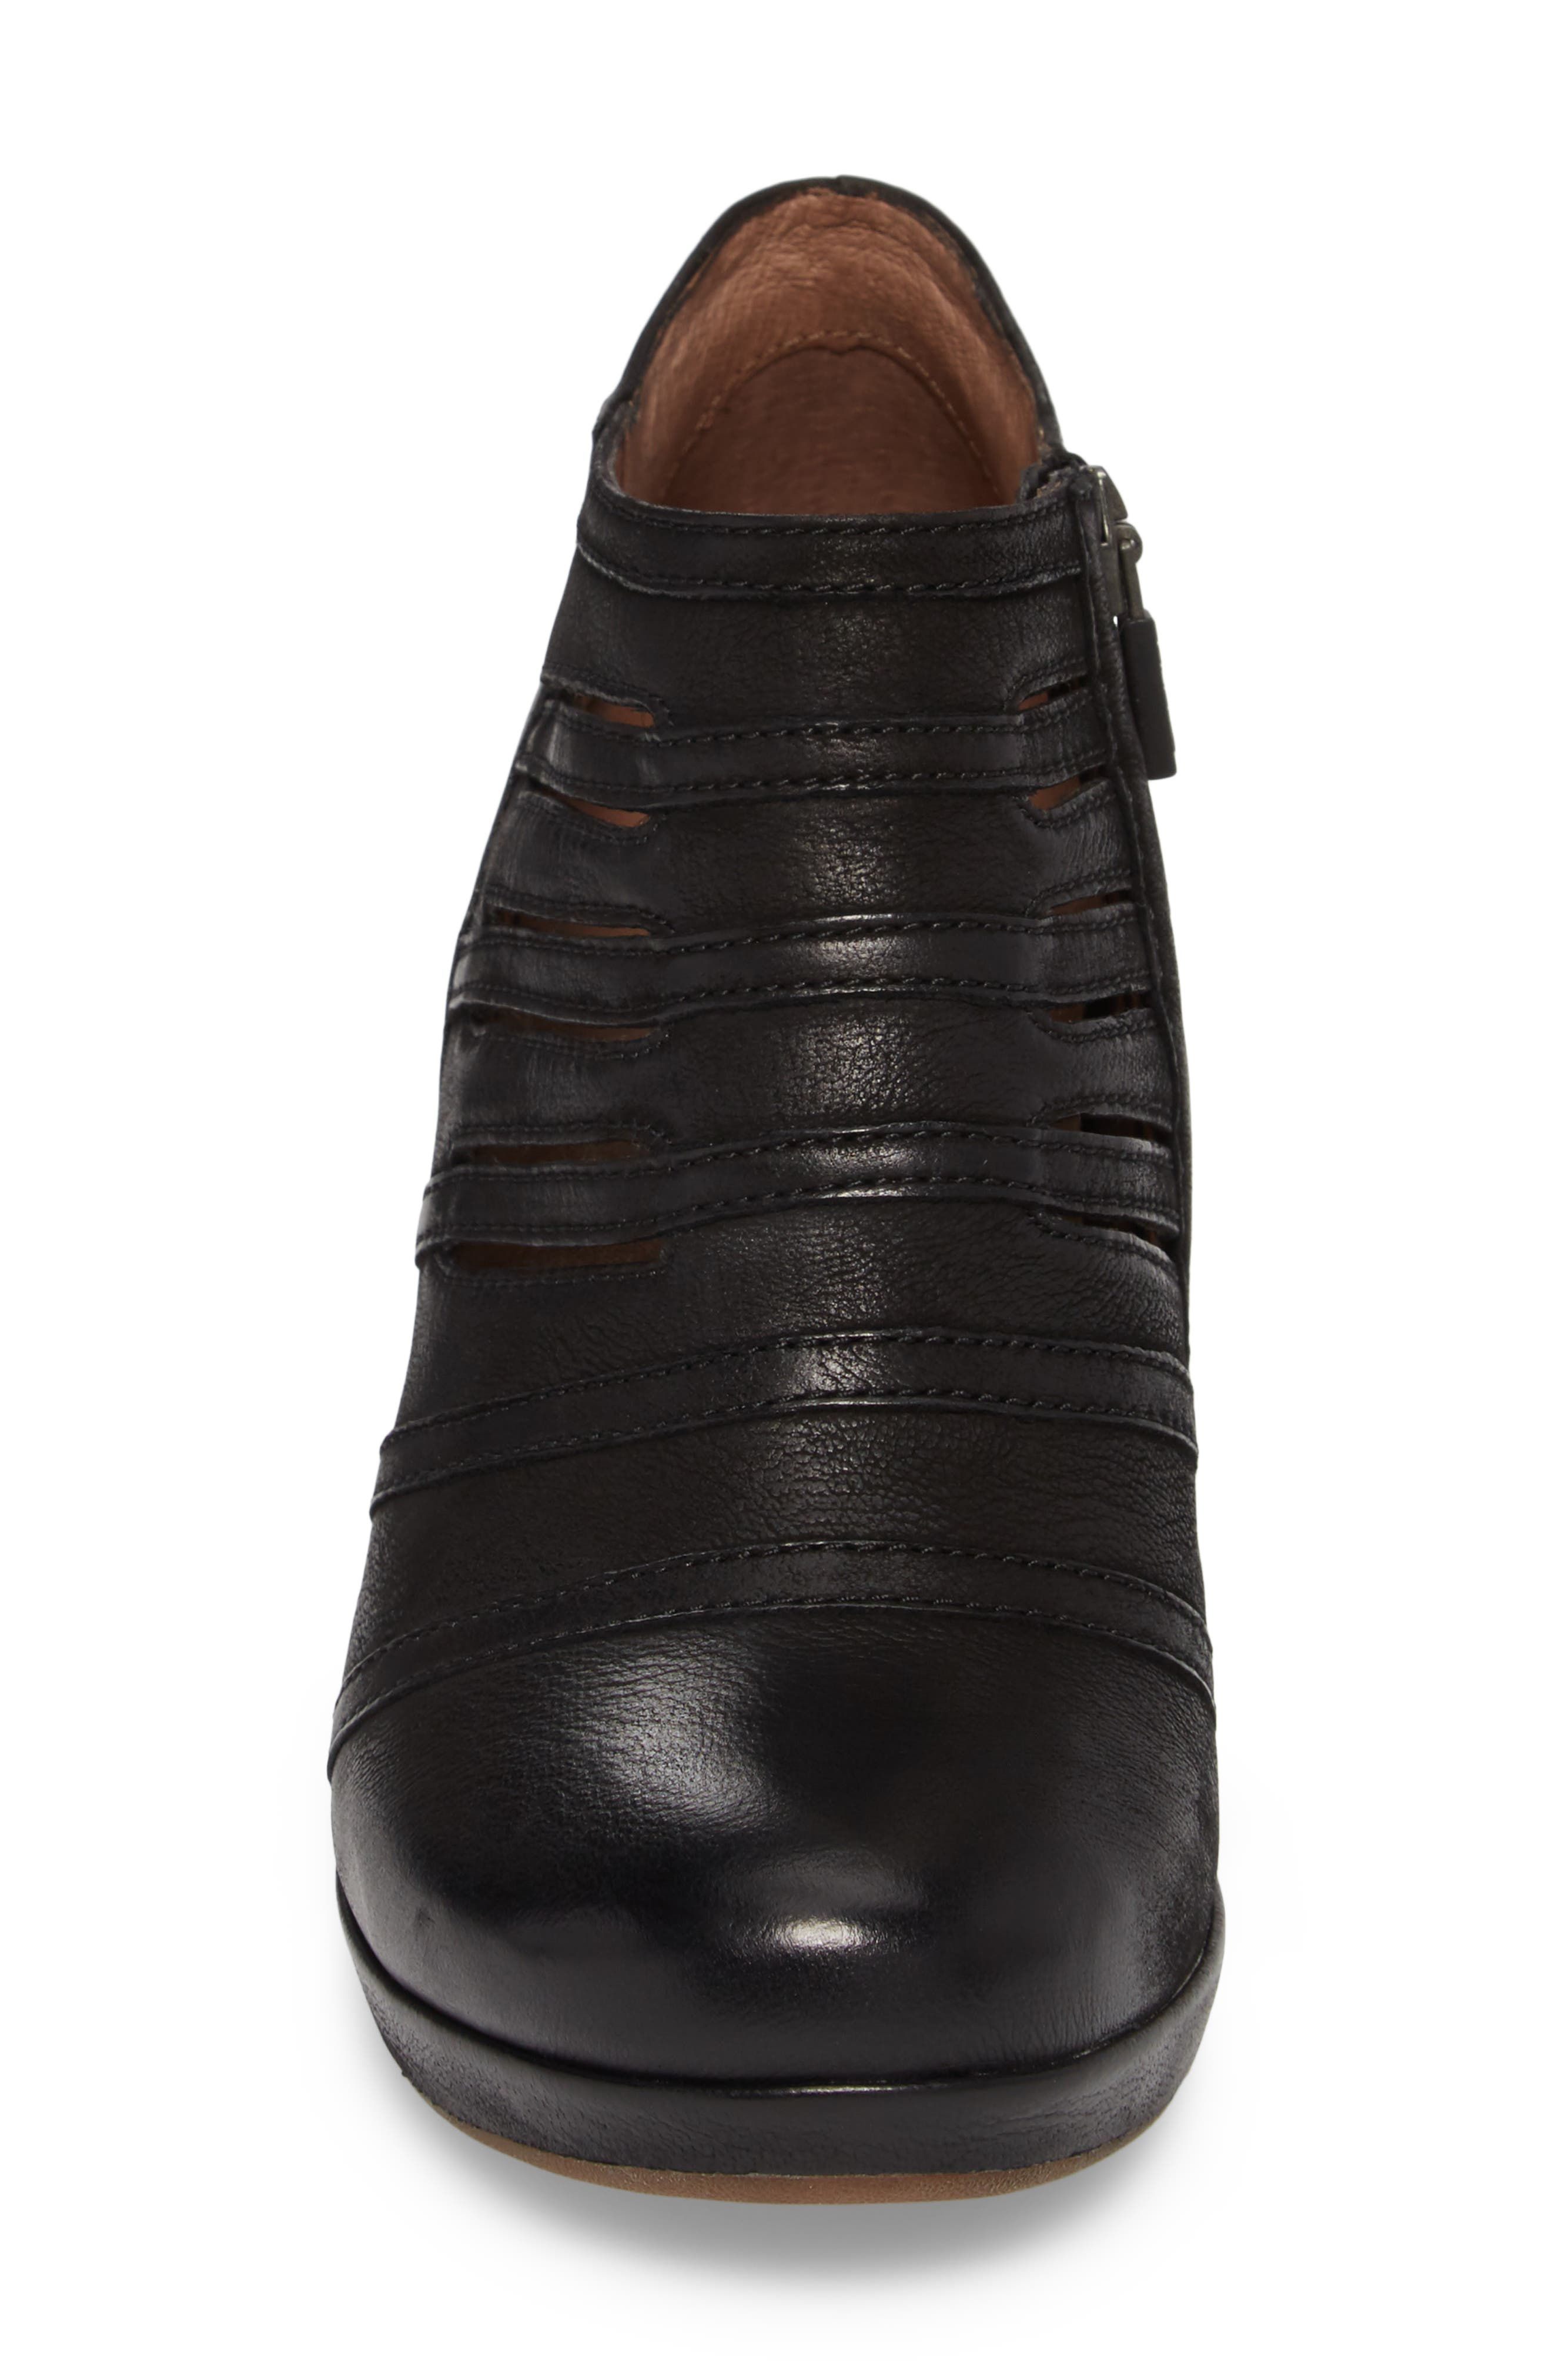 Meadow Bootie,                             Alternate thumbnail 4, color,                             Meadow Black Burnished Leather